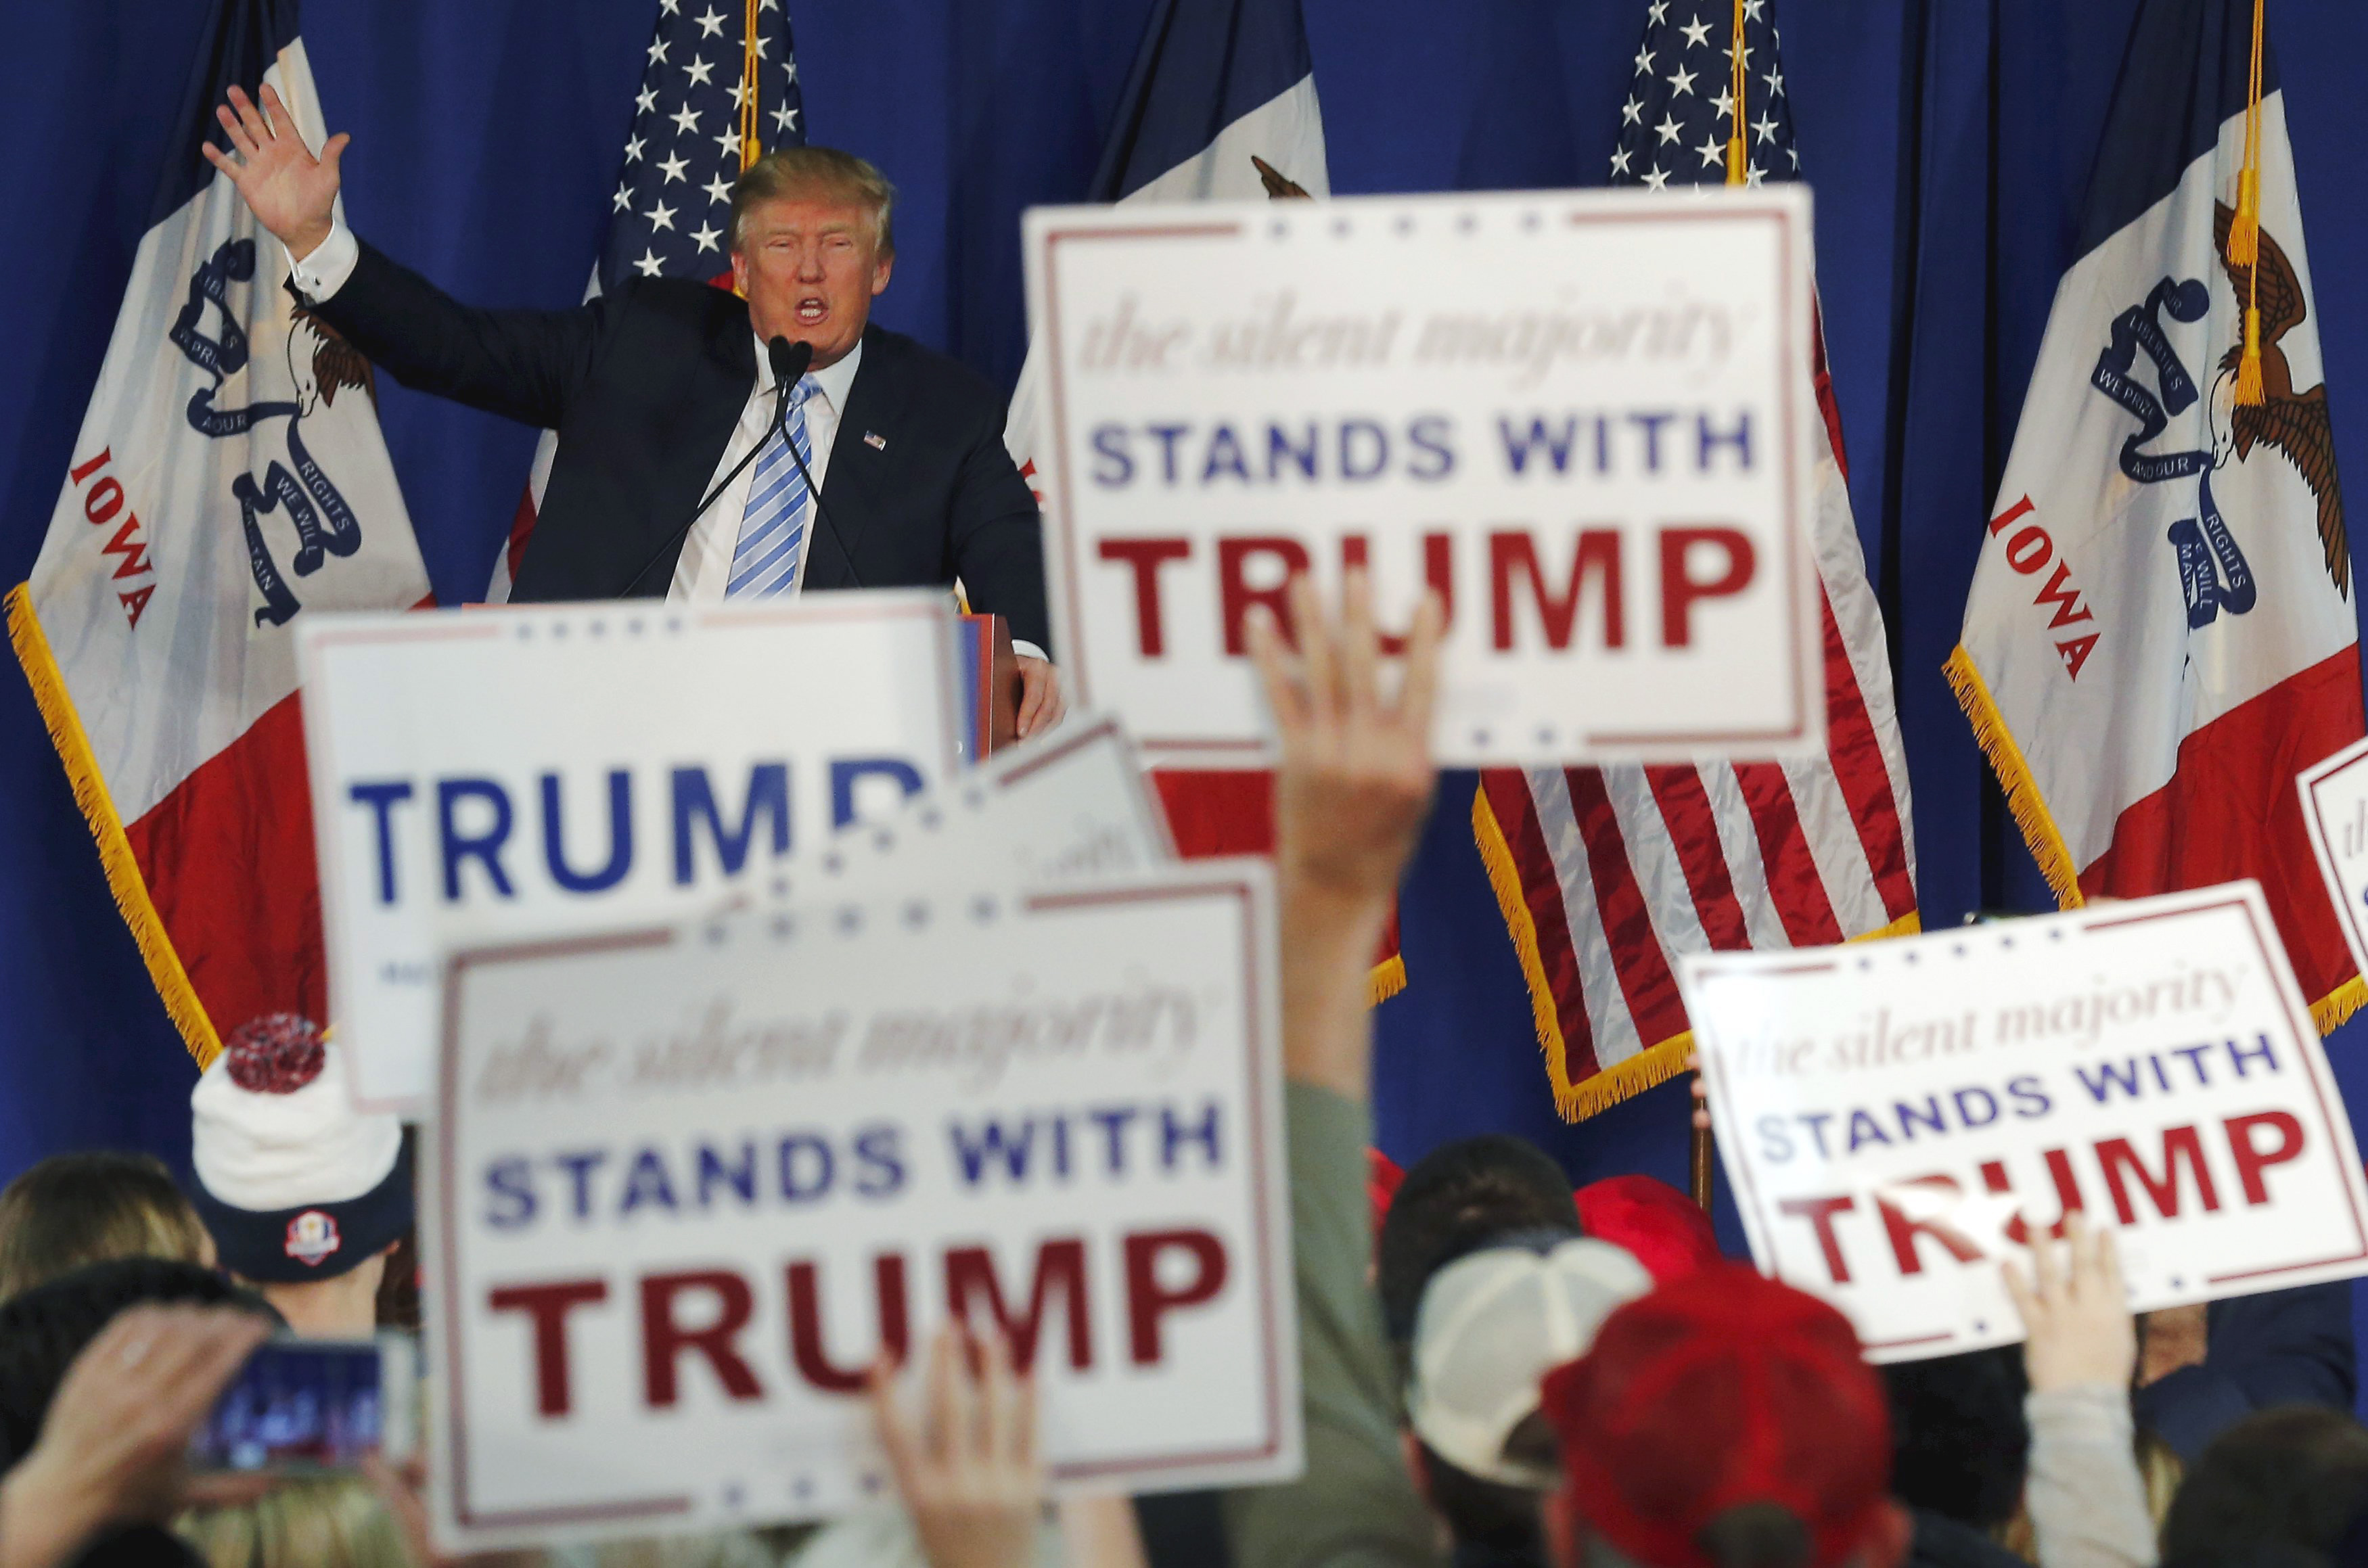 Republican presidential candidate Donald Trump speaks at a campaign event in Muscatine, Iowa on Jan. 24, 2016.